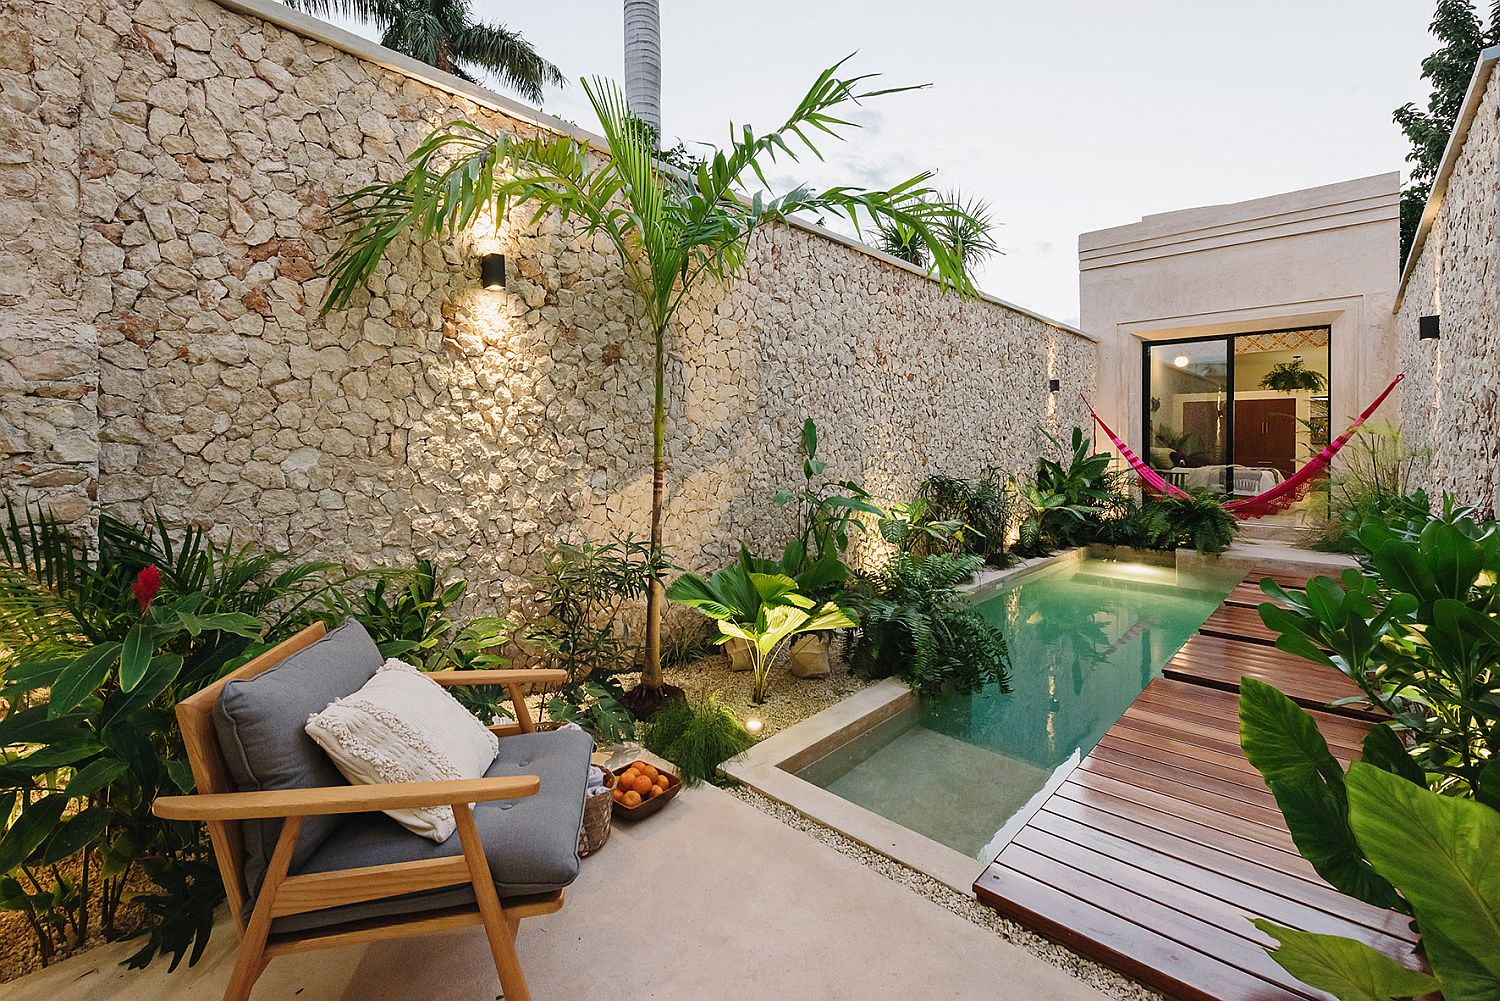 Stone-wall-lush-green-vegetation-and-a-slim-wooden-deck-create-a-private-and-relaxing-pool-zone